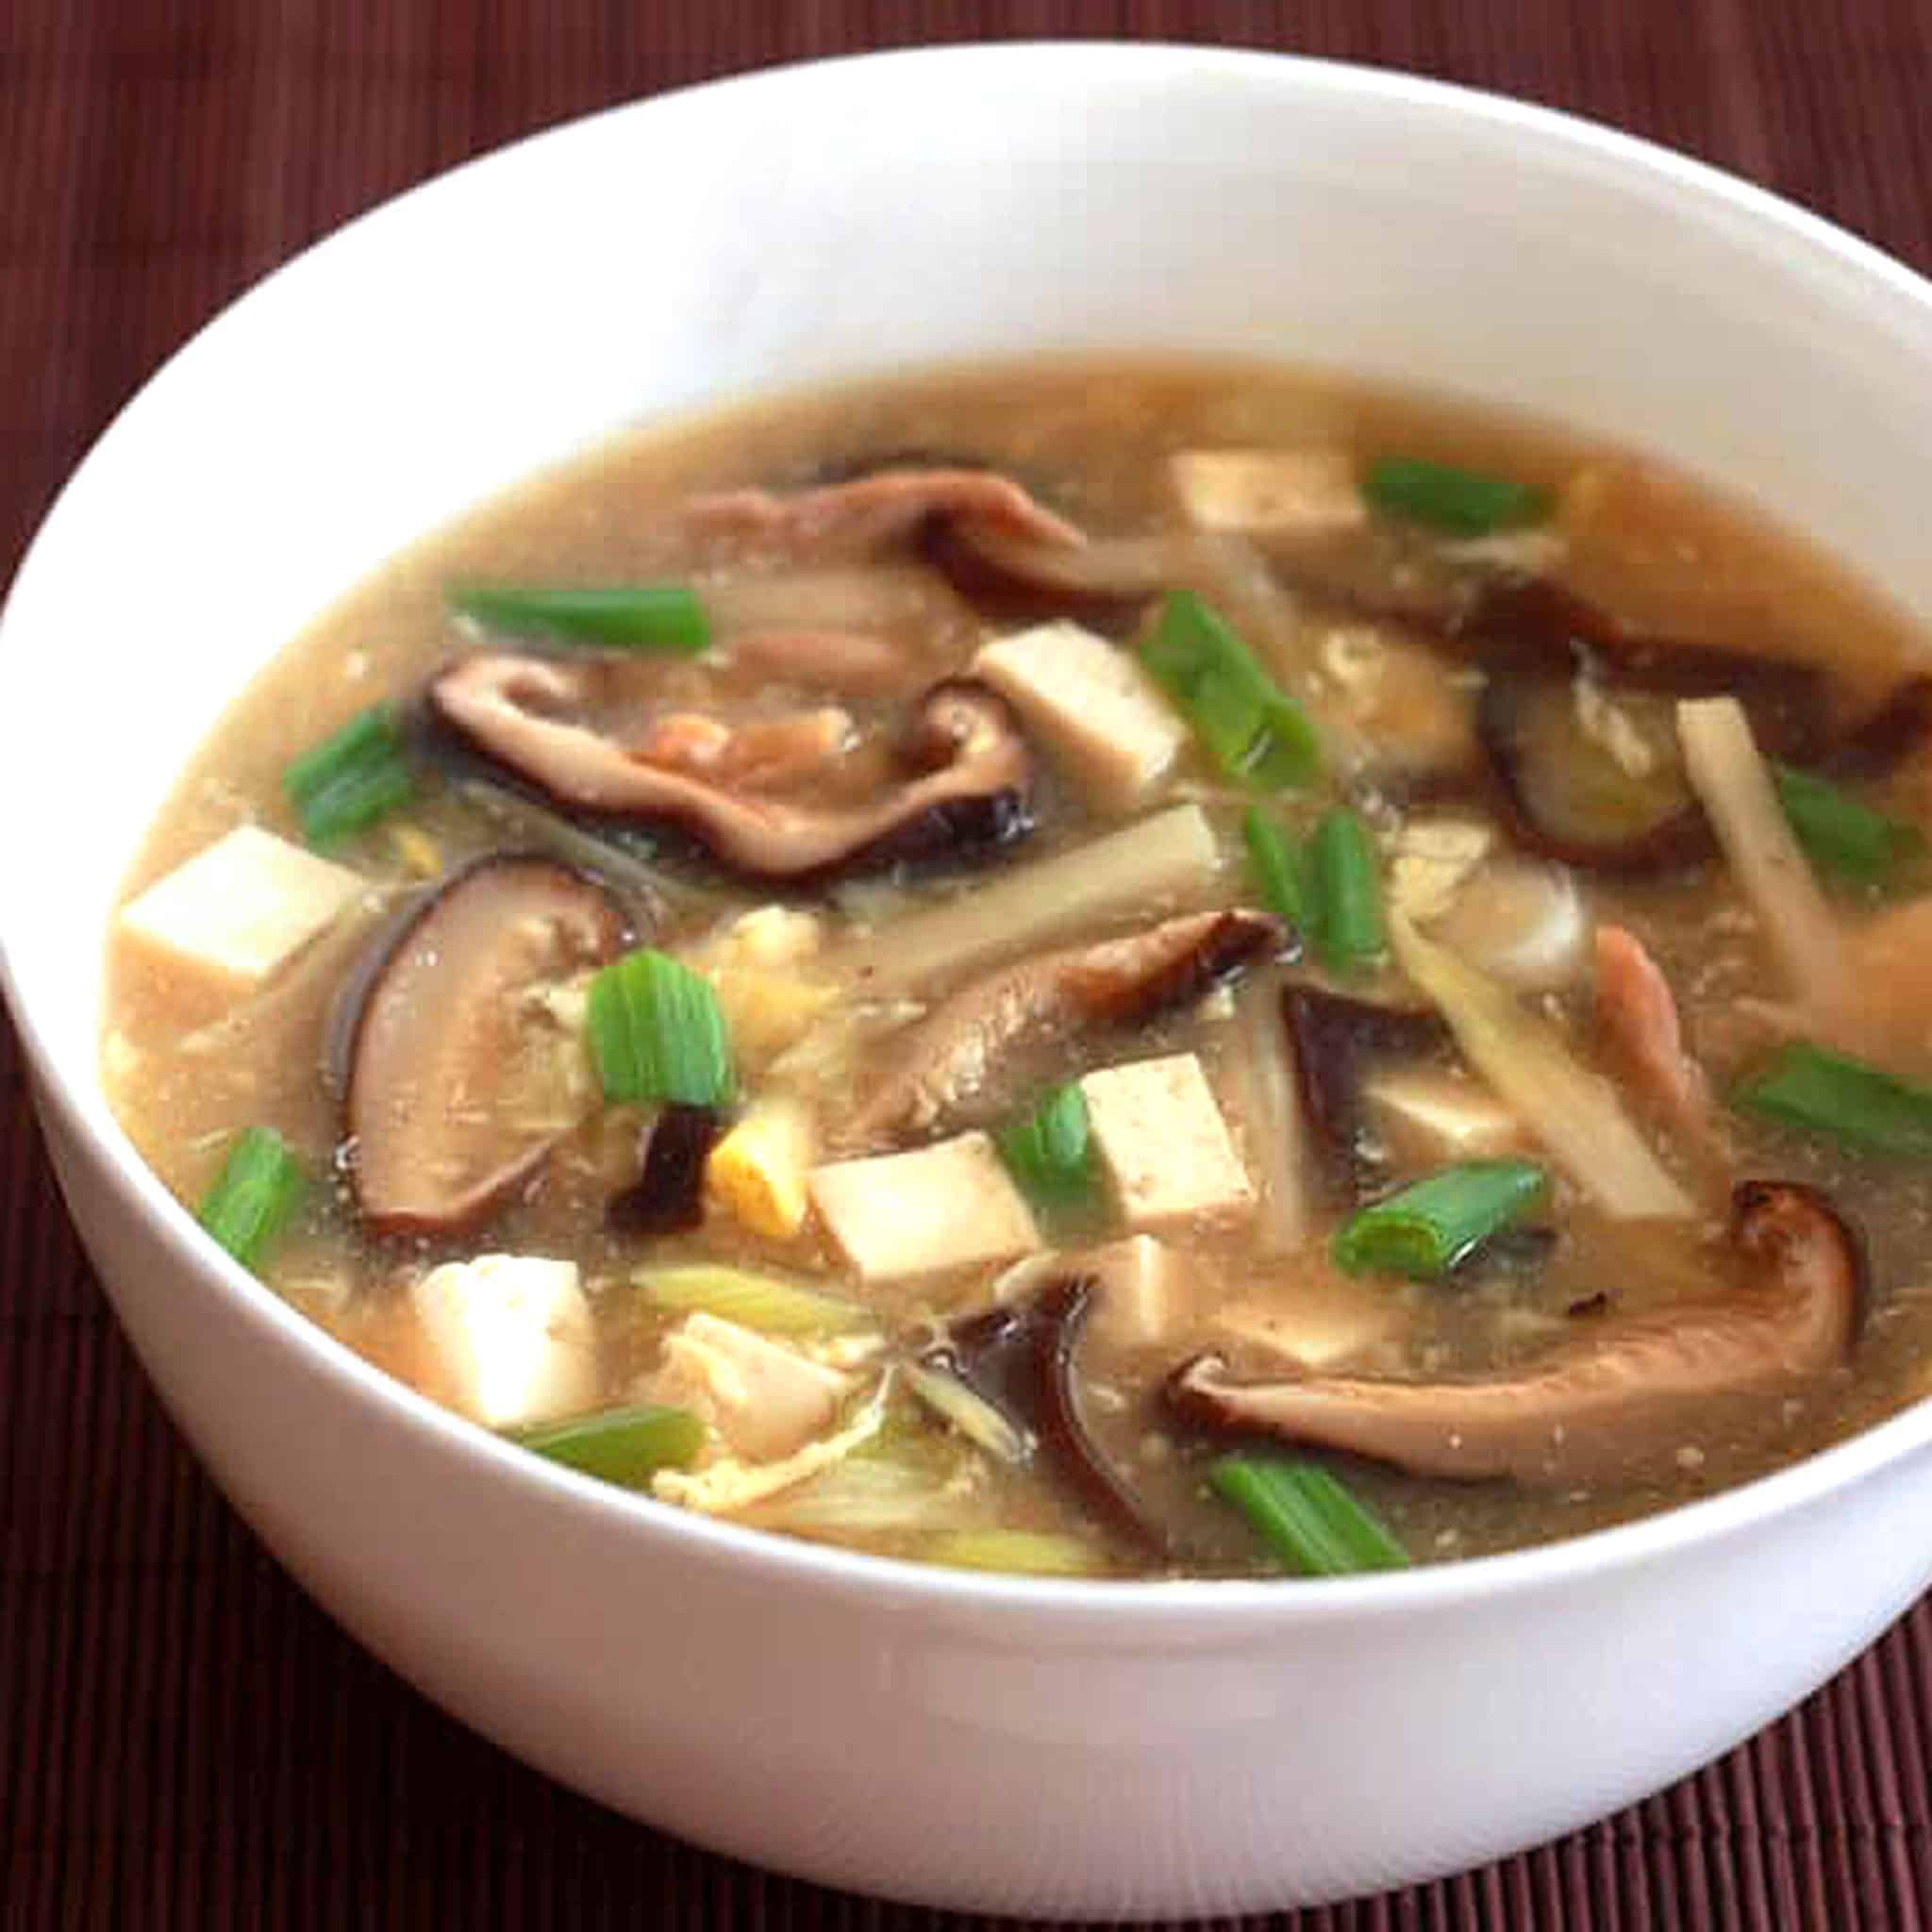 hot and sour soup recipe best authentic traditional Chinese restaurant style homemade